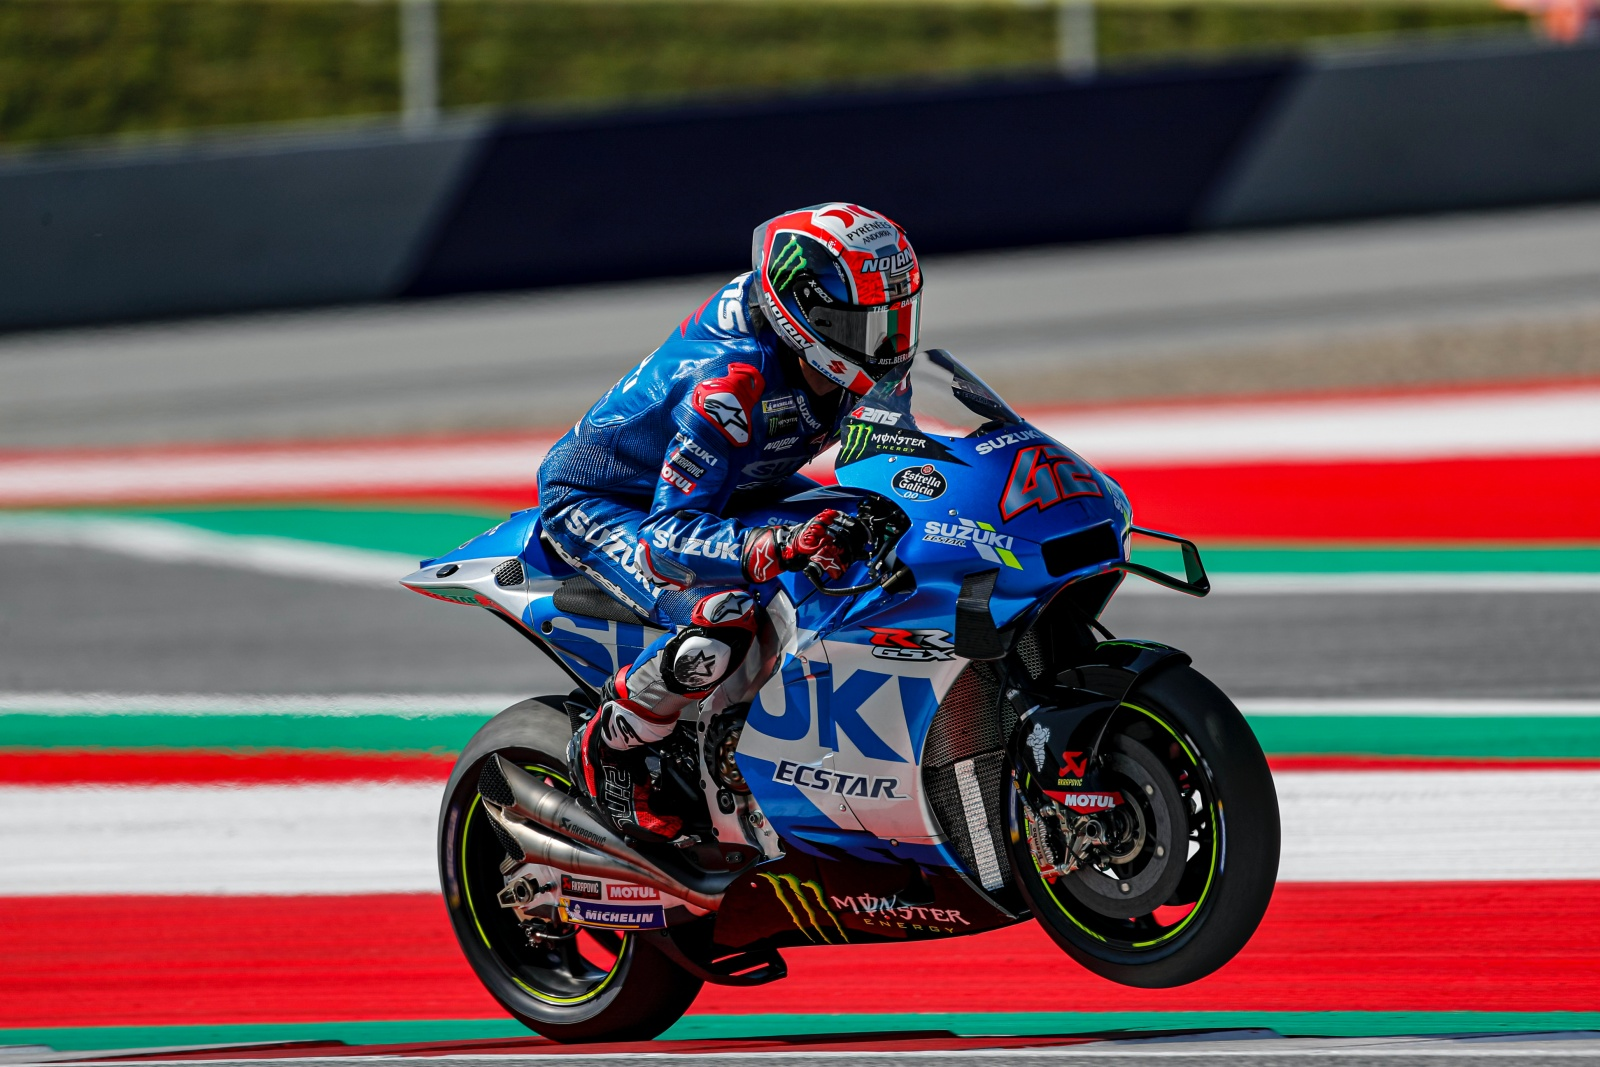 SUZUKI DEBUT DEVICE ON SATURDAY AND MIR TAKES SECOND ROW